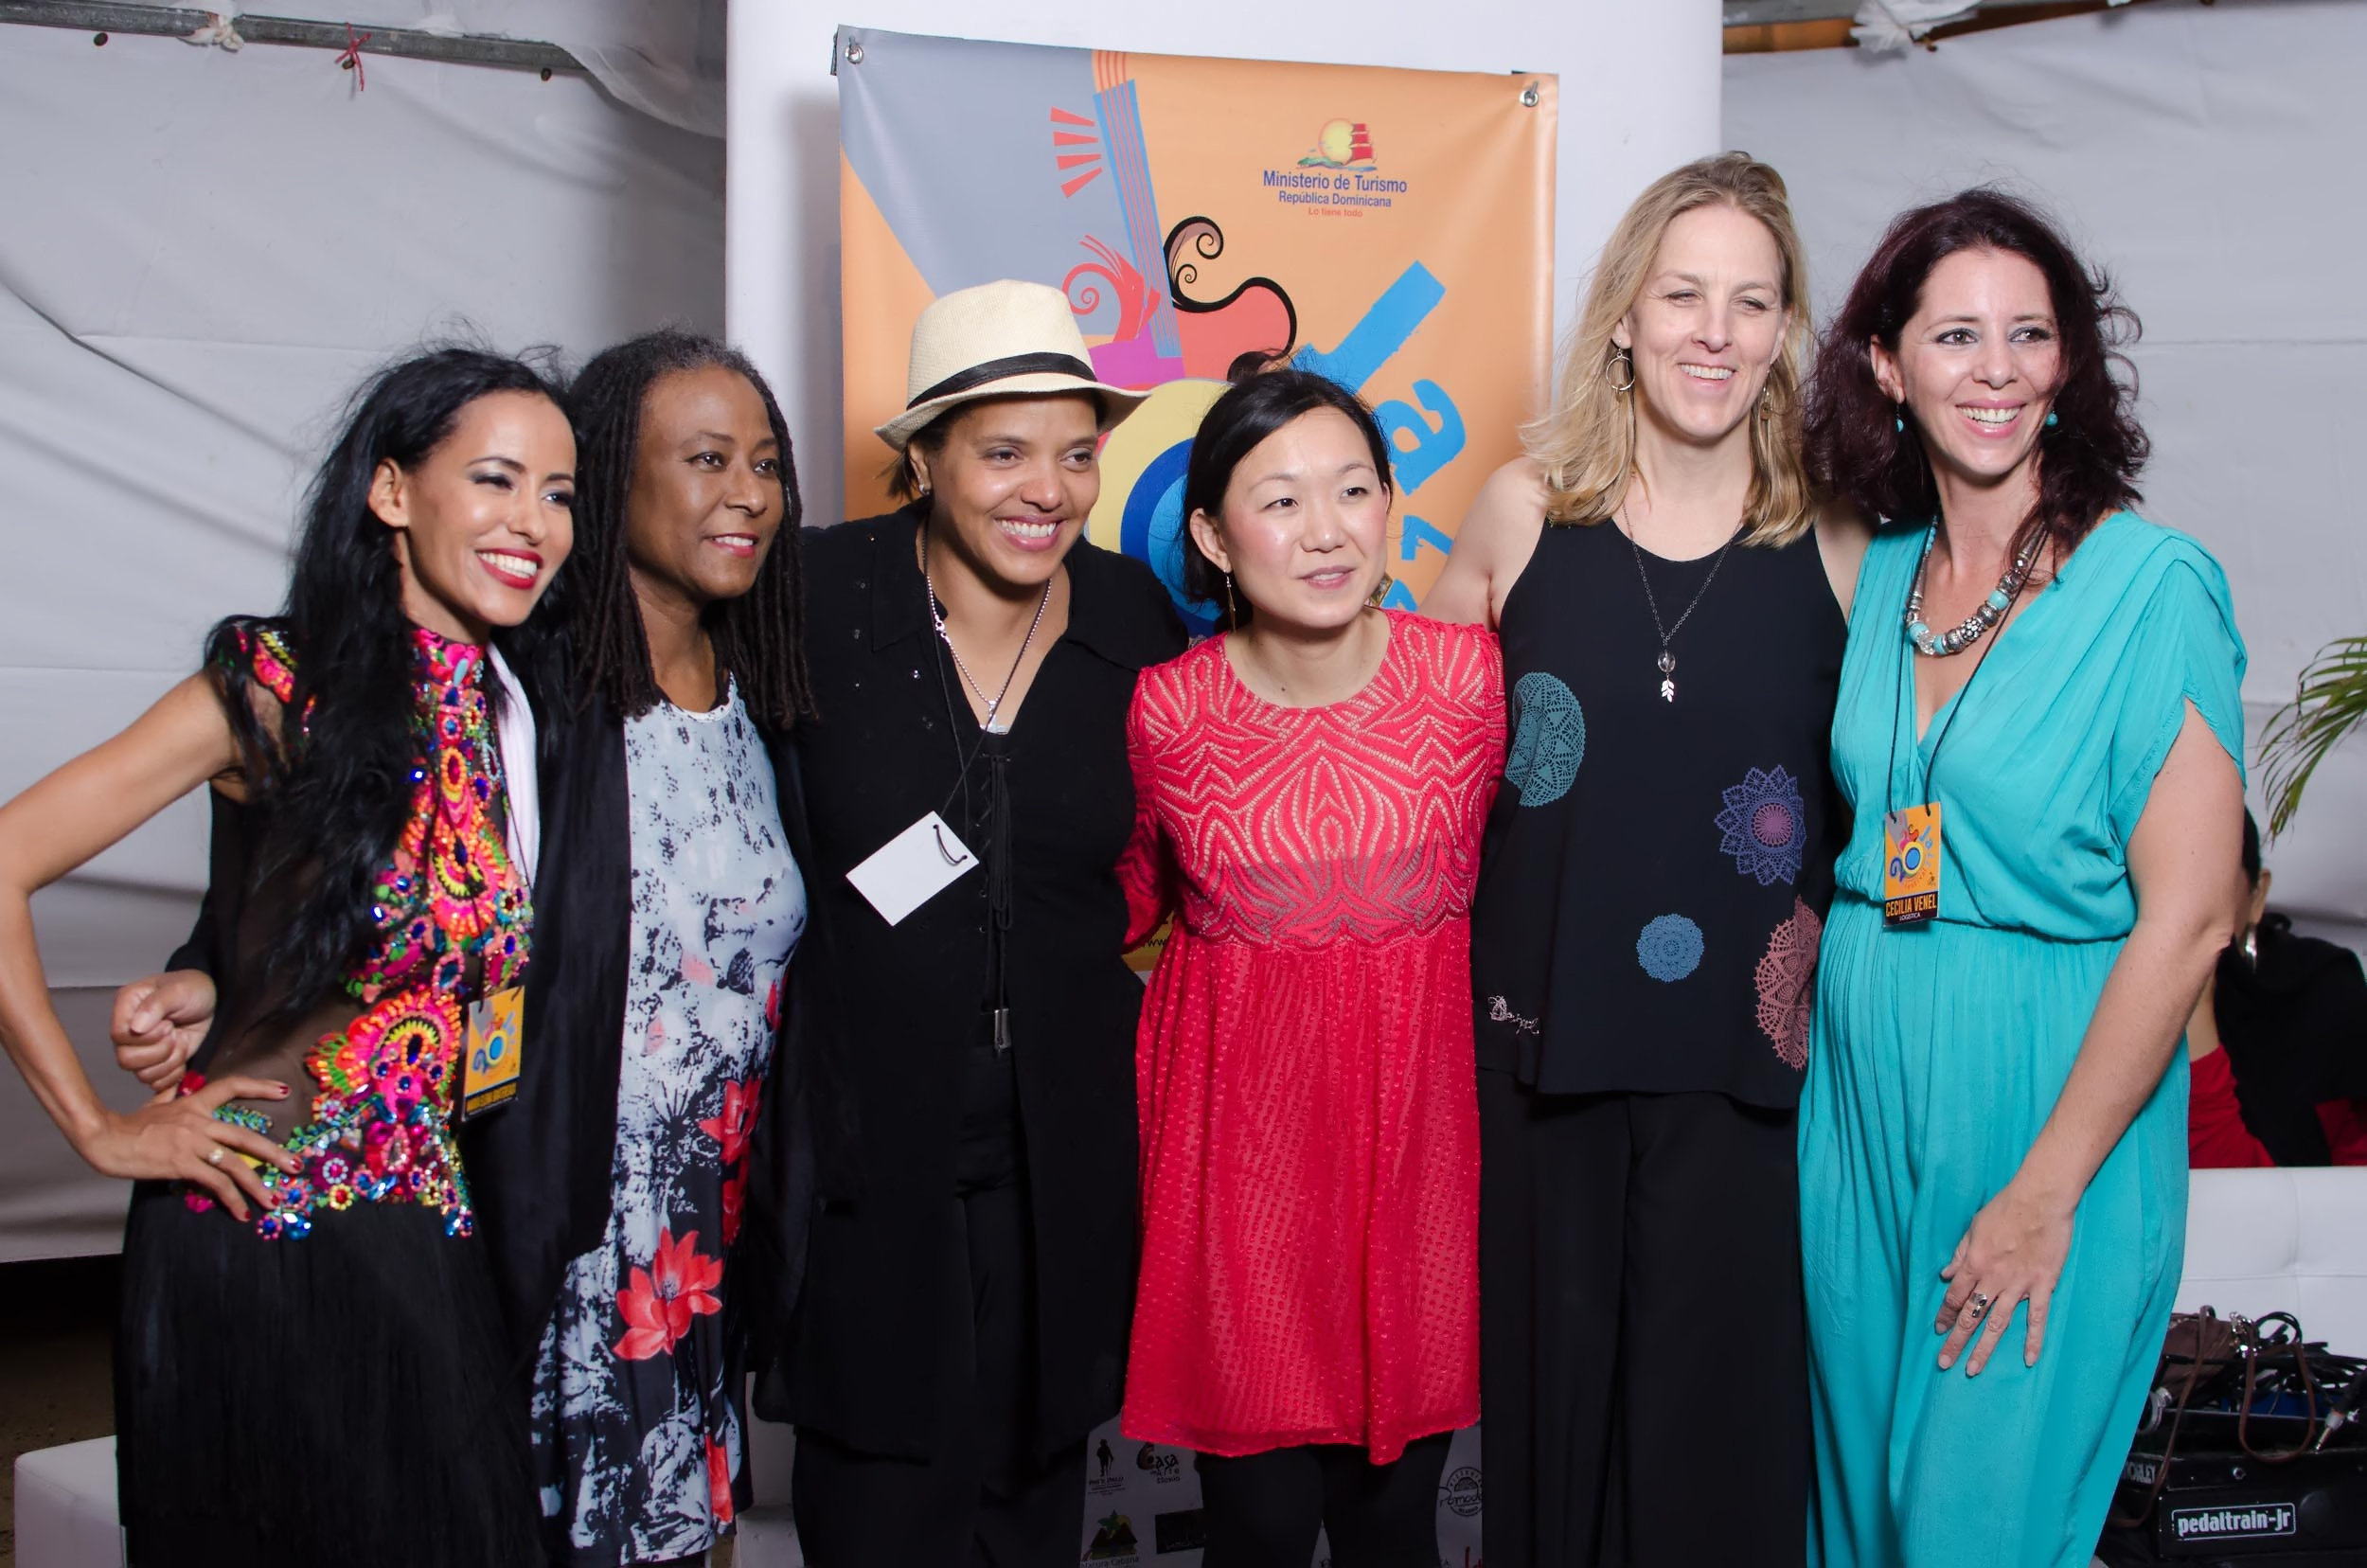 Pictured (from left to right): Maria Elena Gratereaux, Geri Allen,Terri Lynne Carrington, Linda Oh, Ingrid Jensen, and Cecilia Venel. (Photo by Gabriel Rodes)